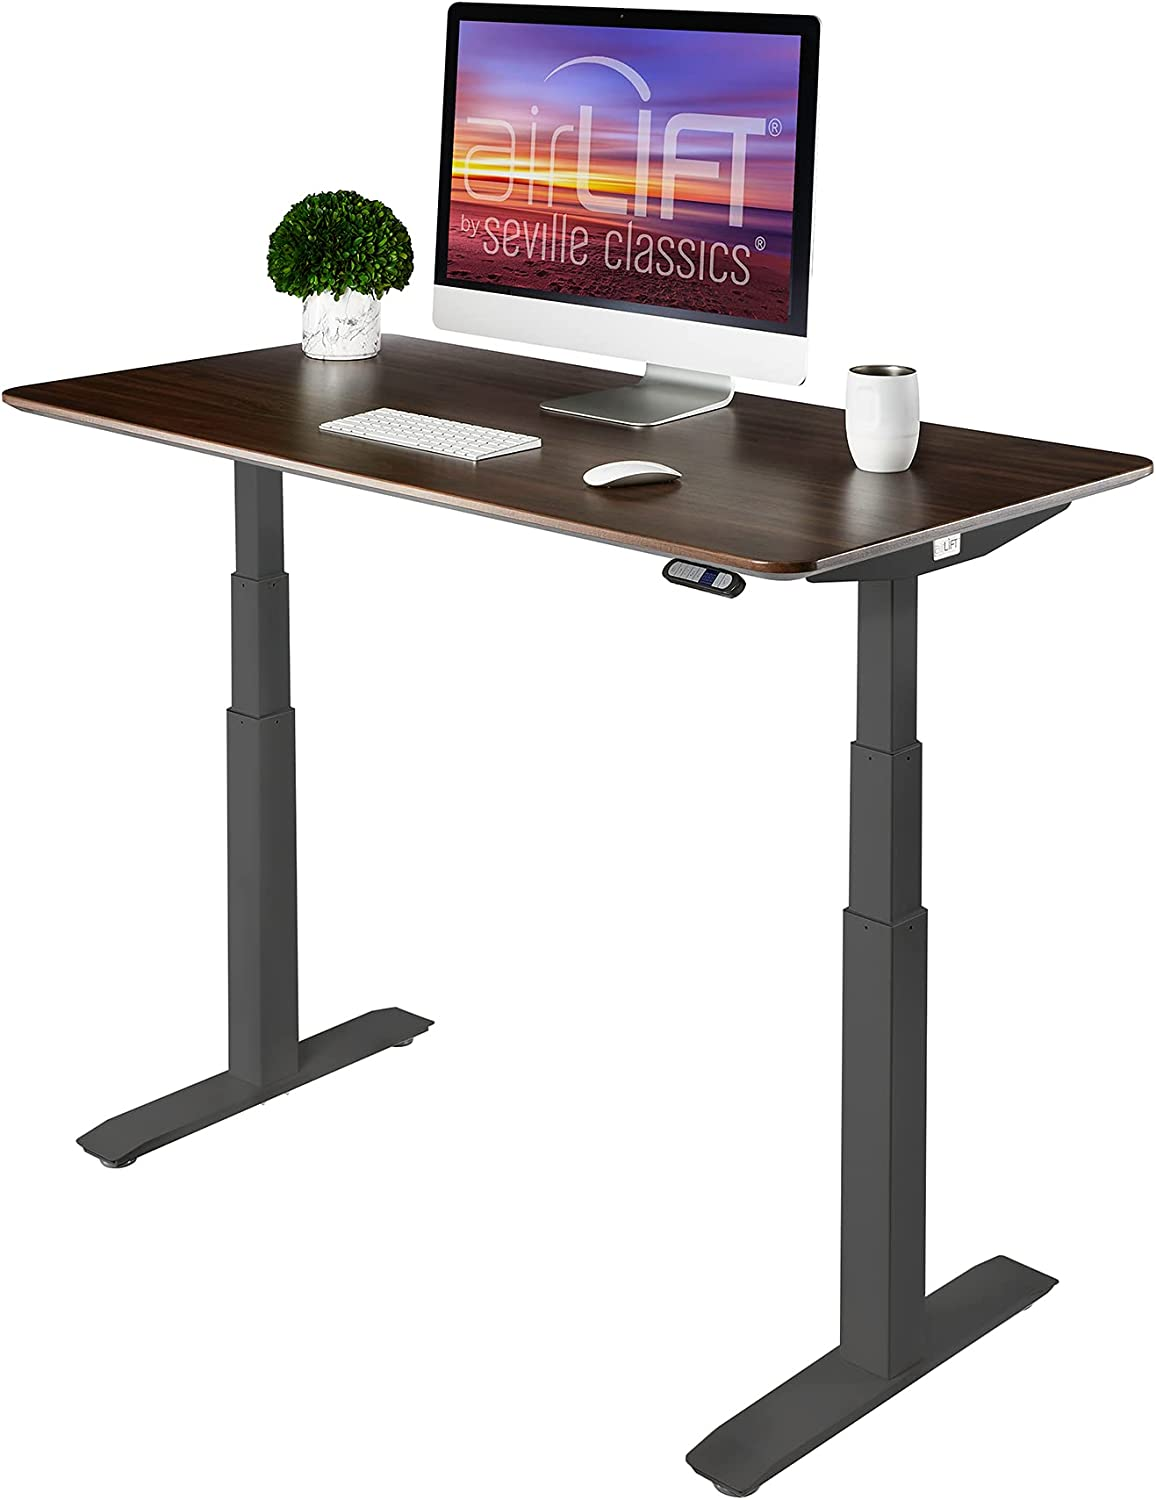 """Seville Classics AIRLIFT Pro S3 54"""" Solid-Top Commercial-Grade Electric Adjustable Standing Desk"""